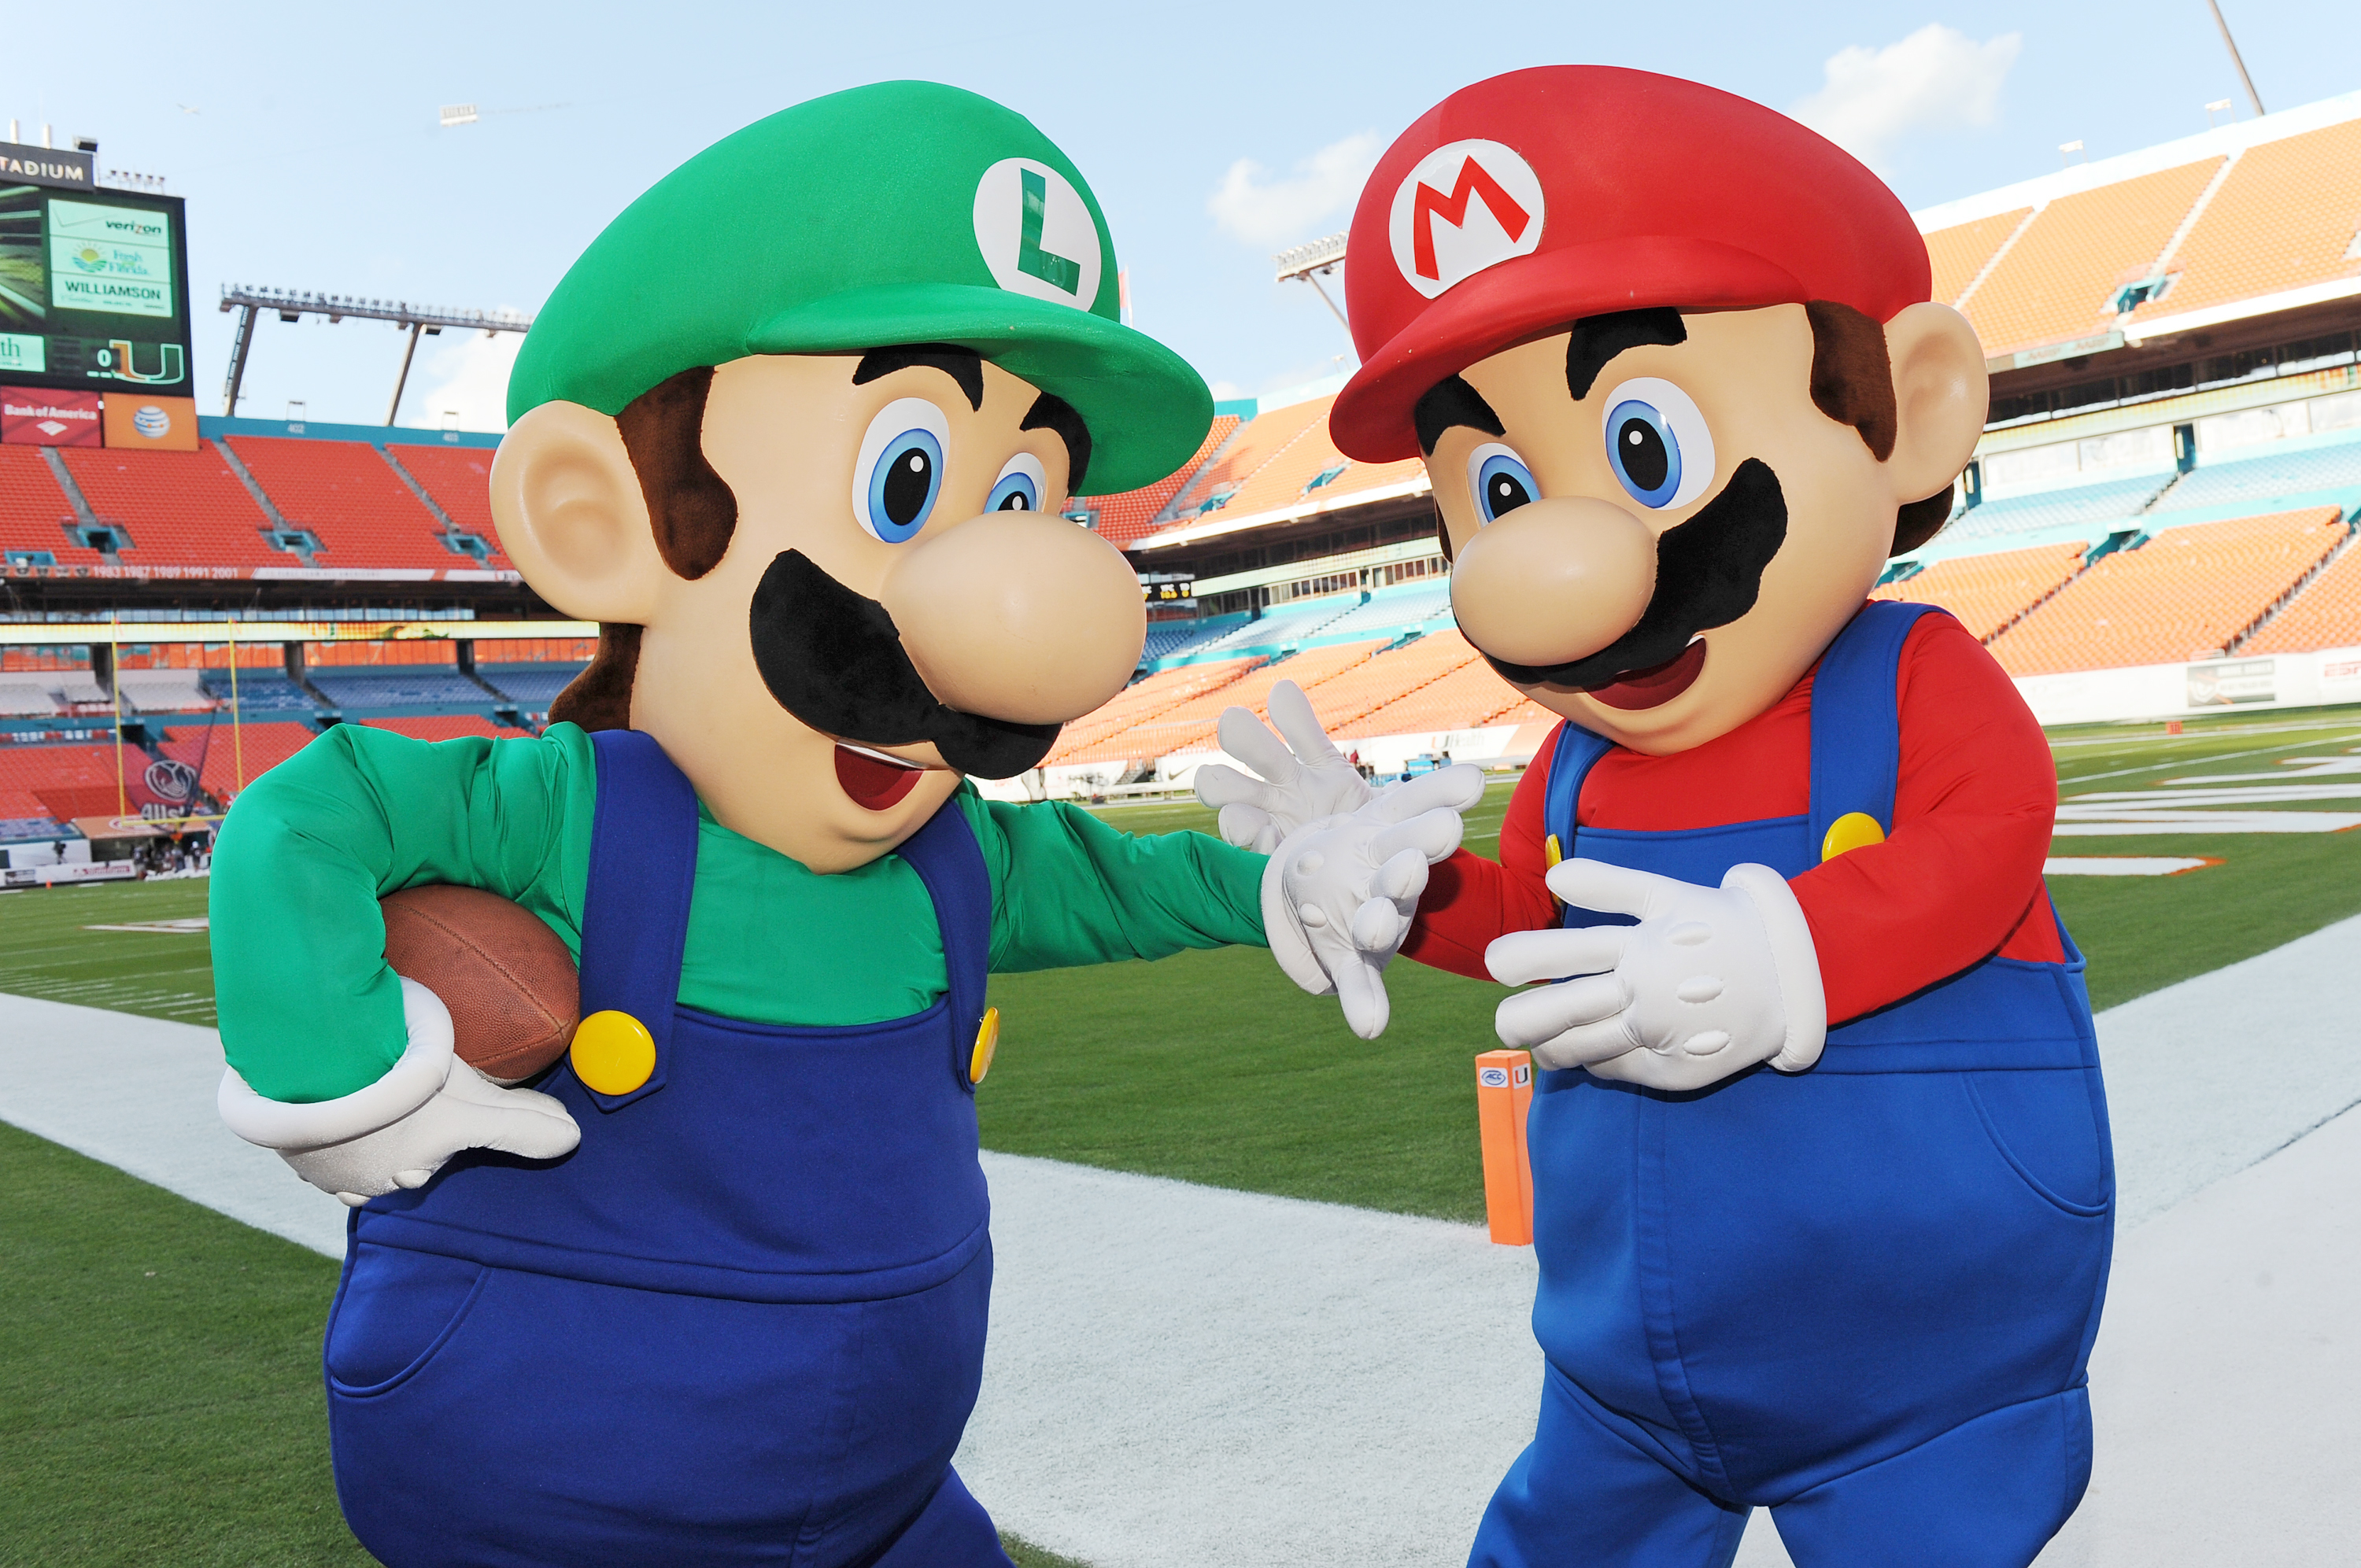 Mario and Luigi take the field at Sun Life Stadium before the face-off between Florida State and University of Miami on Nov. 15, 2014